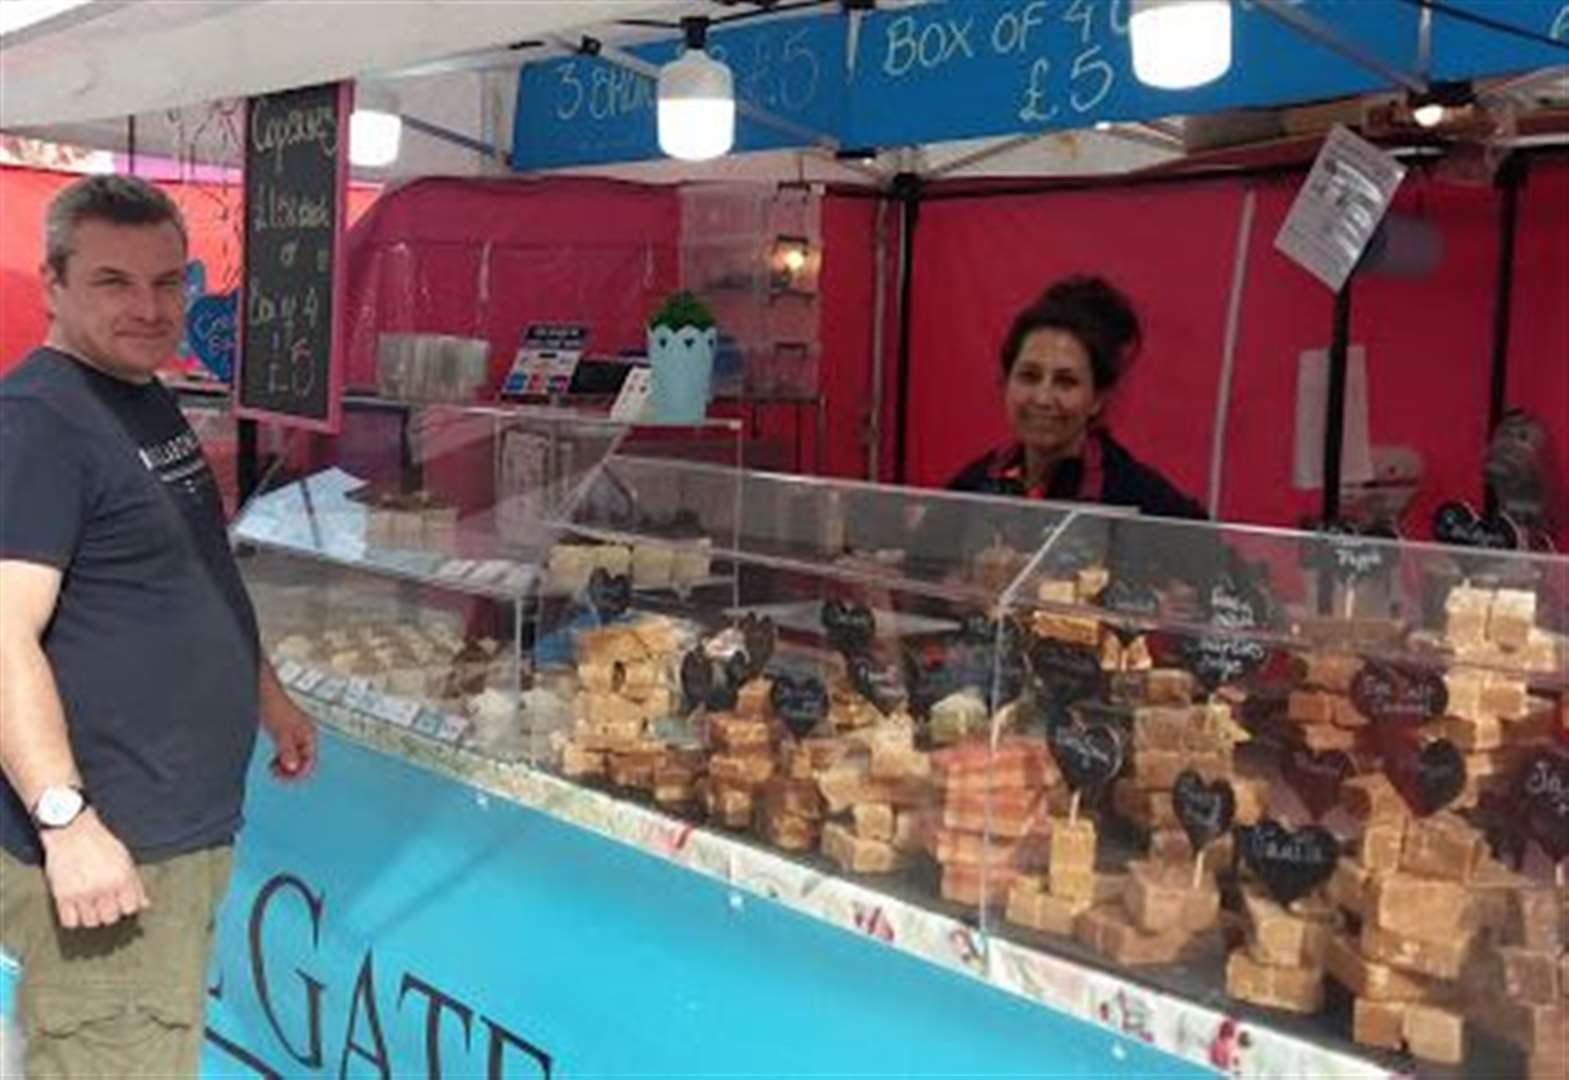 International flavours and products available at special market open for six days in Lynn town centre